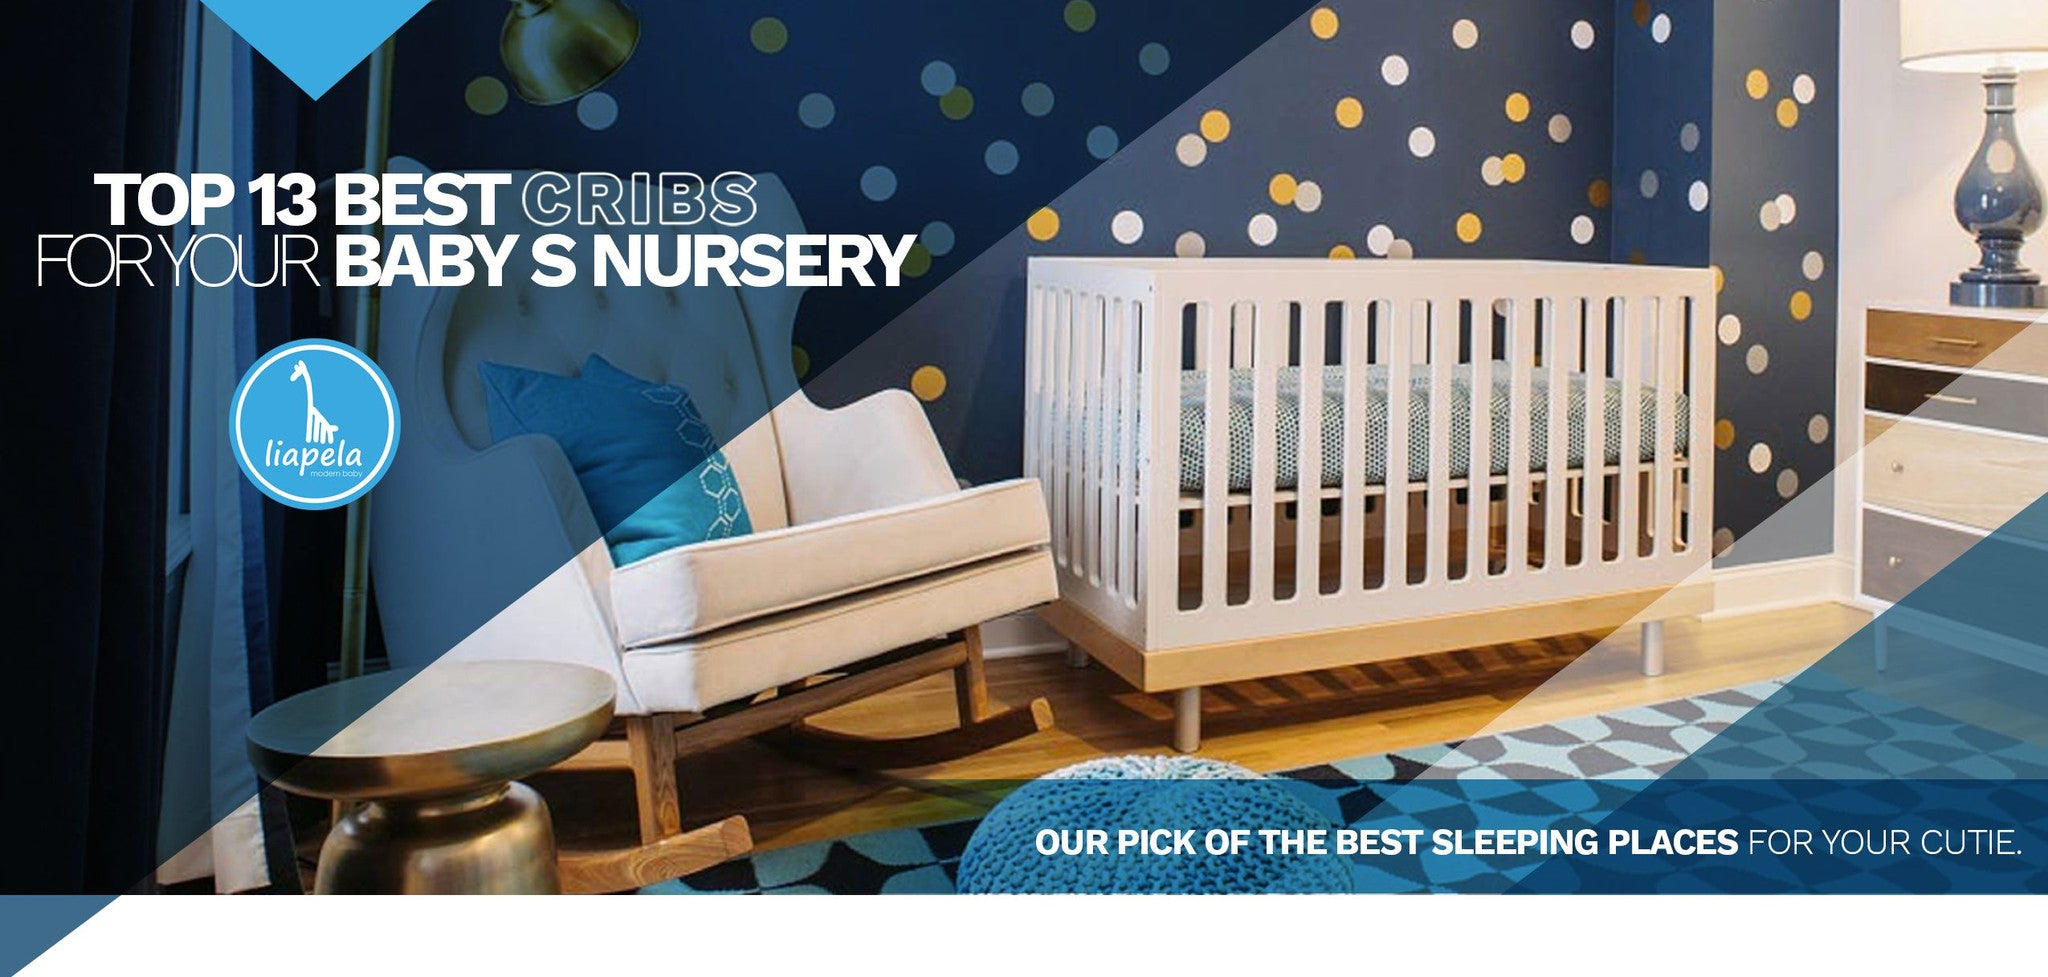 Best crib for newborn baby - Find The Best Crib For Your Newborn Baby With A Little Help From Liapela